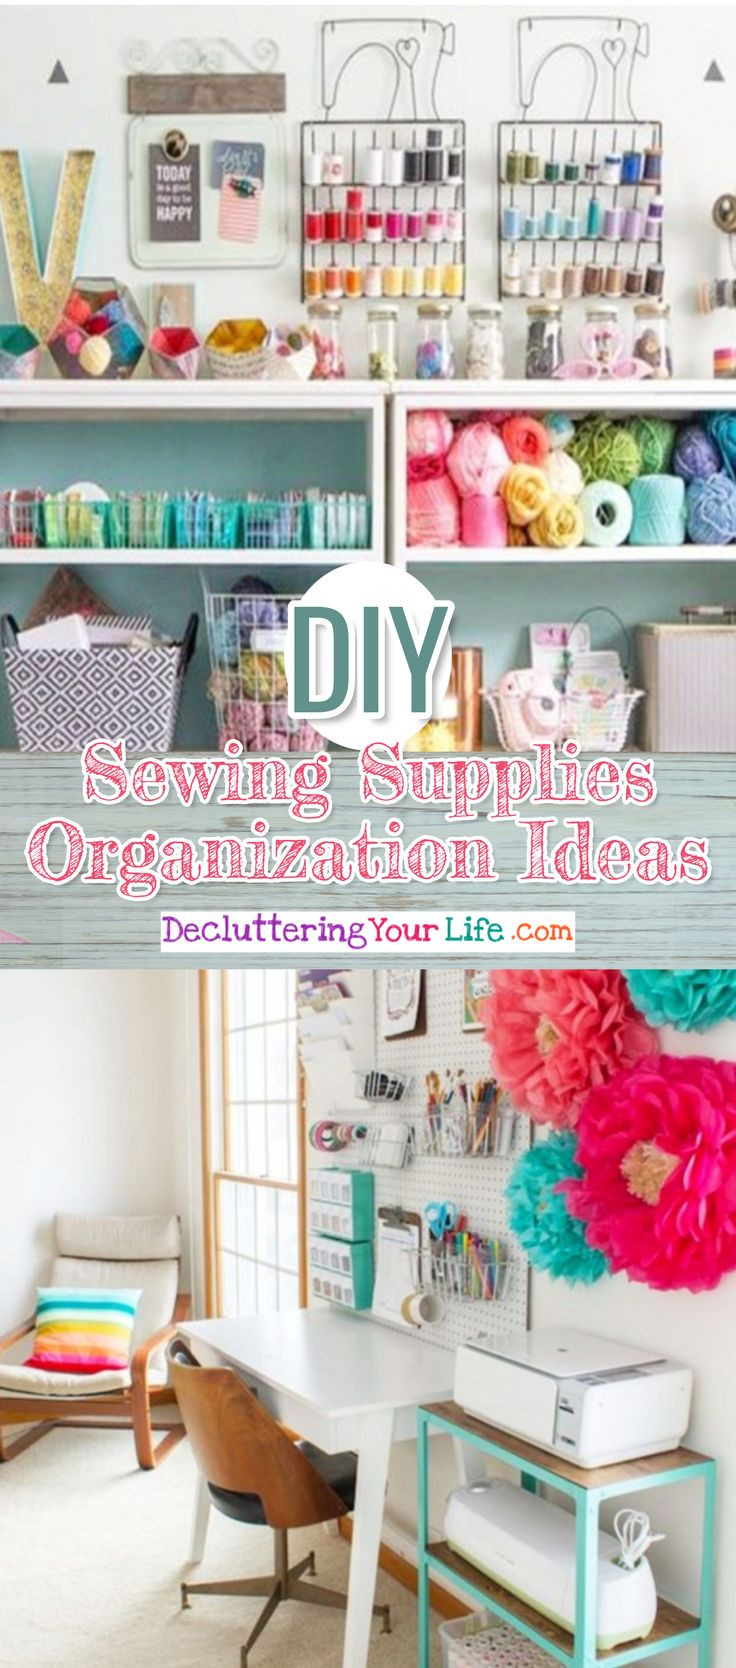 Best ideas about Room Organization DIY . Save or Pin Best 25 Homemade room decorations ideas on Pinterest Now.